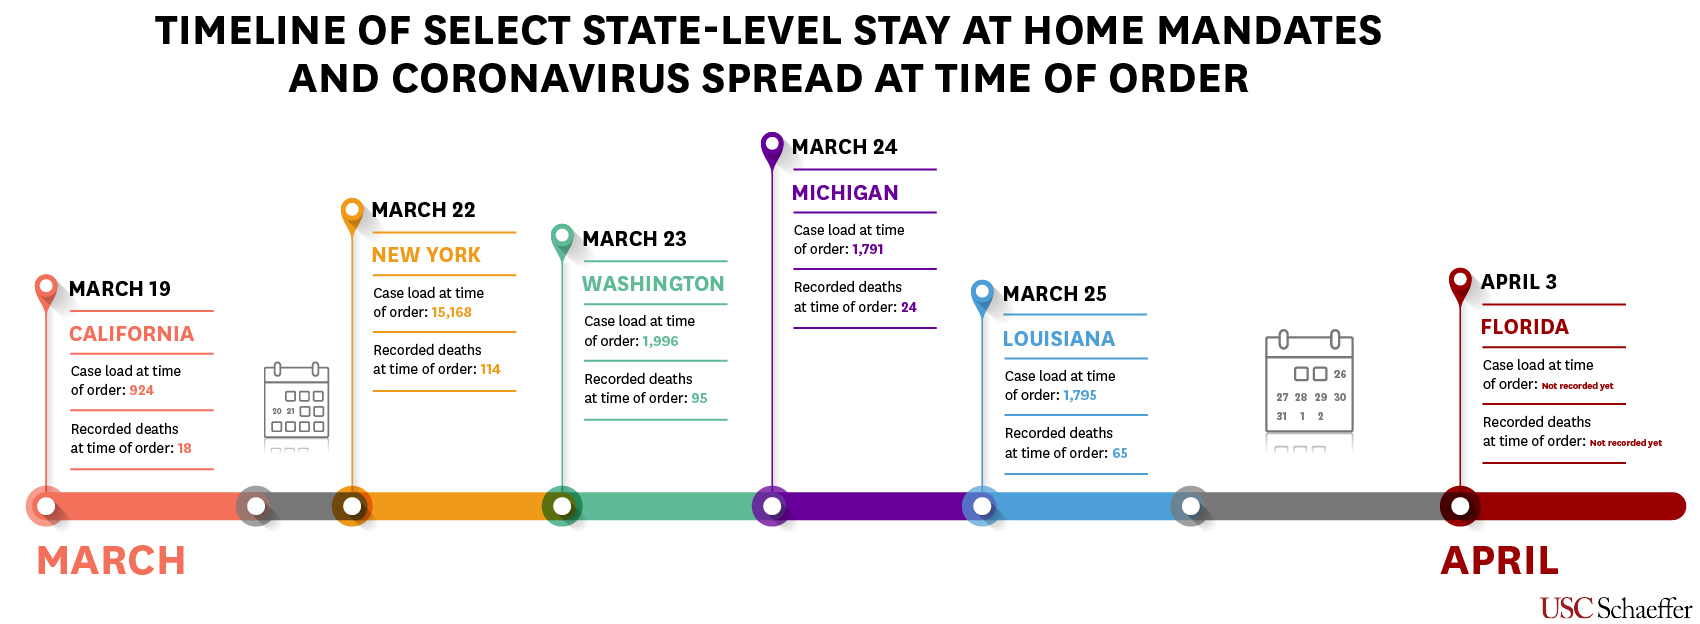 Timeline of Select State-Level Stay at Home Orders